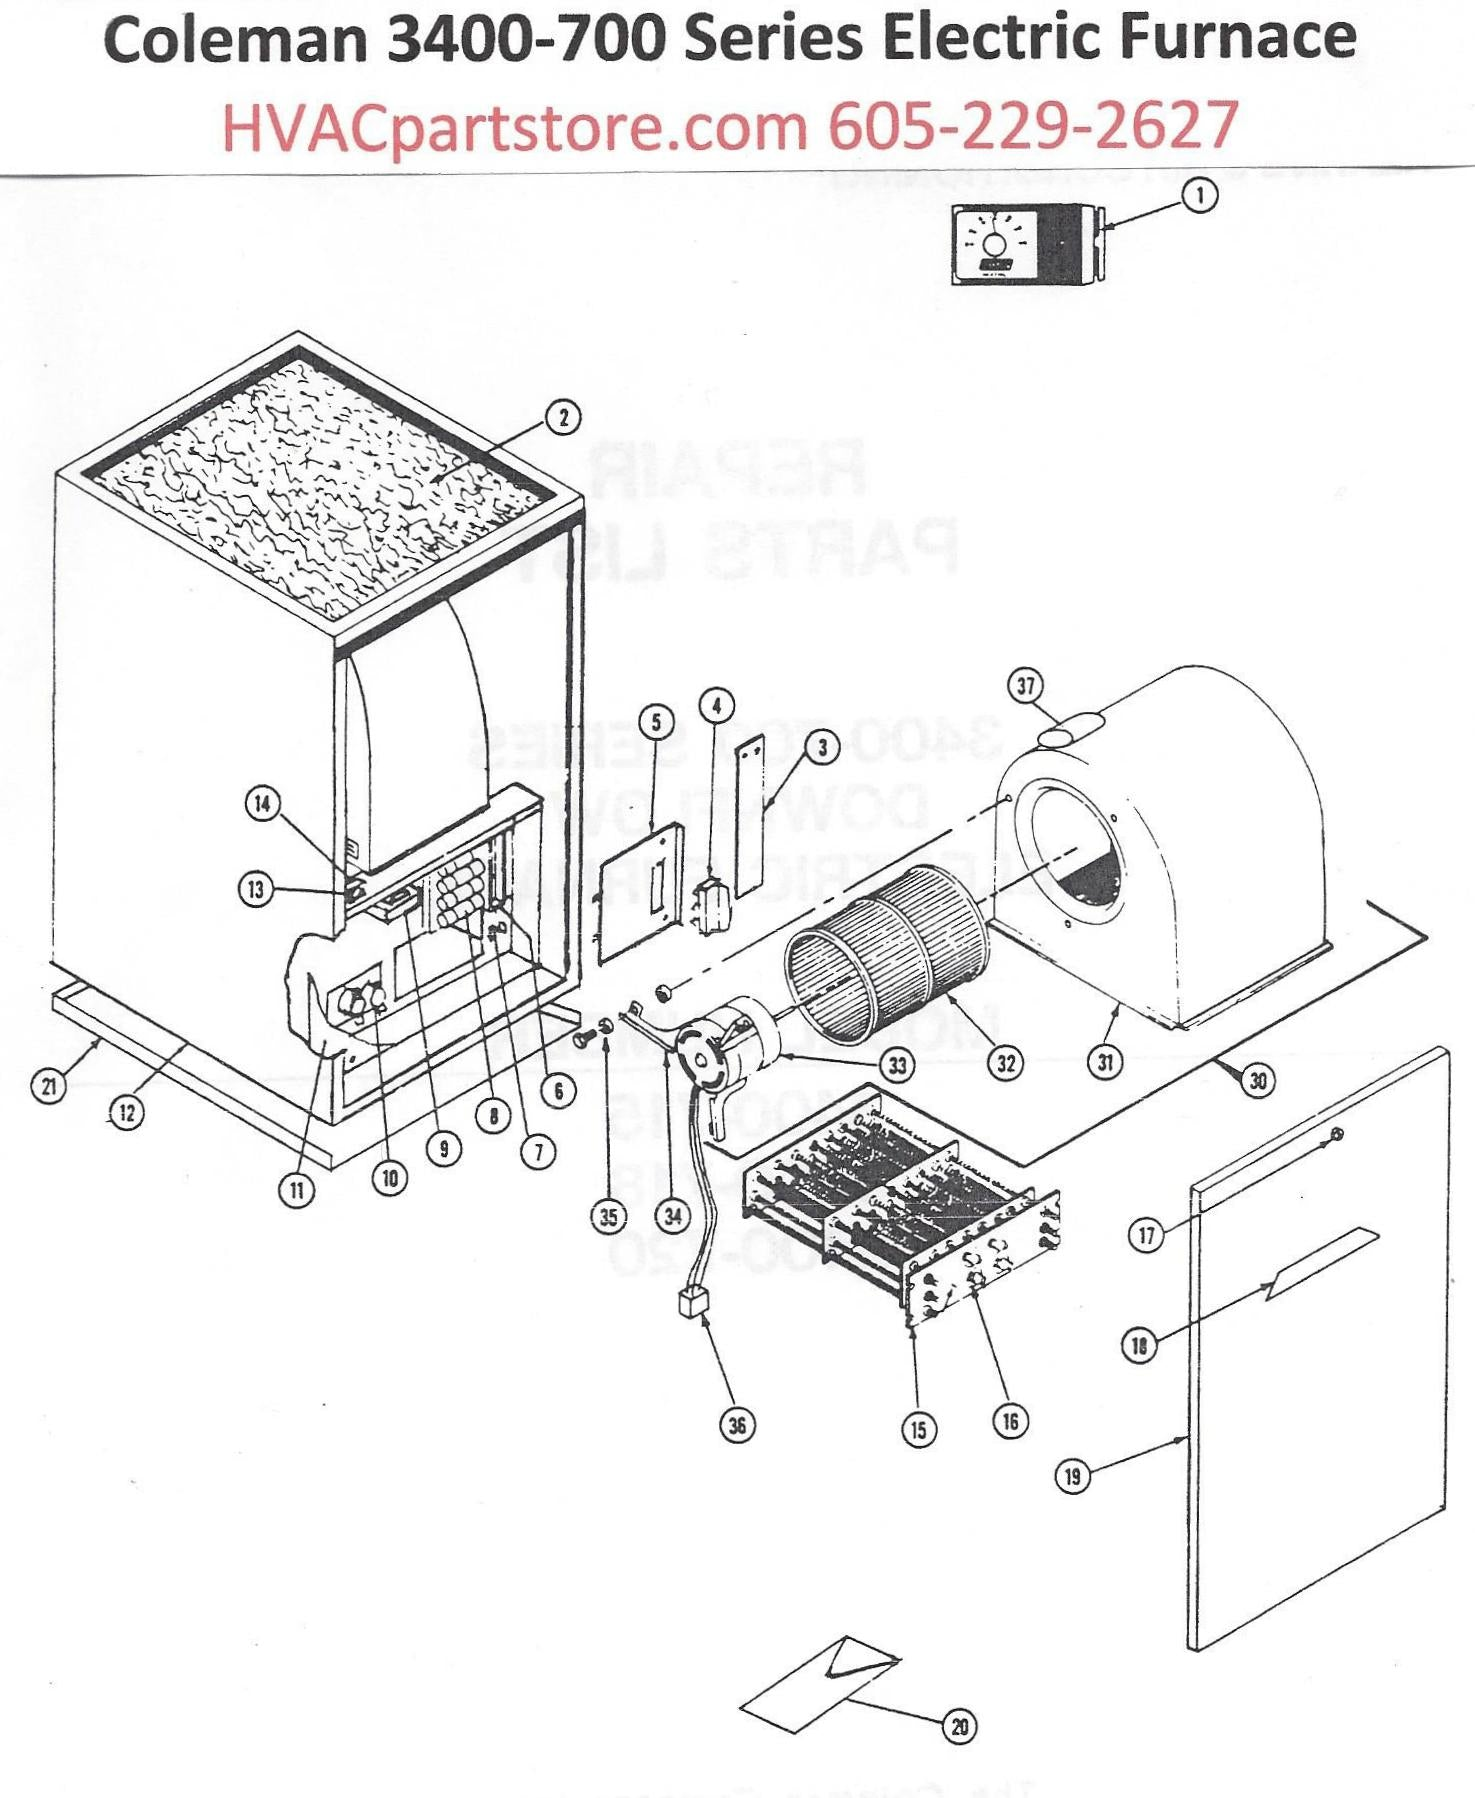 e2eb 012ha wiring diagram   25 wiring diagram images